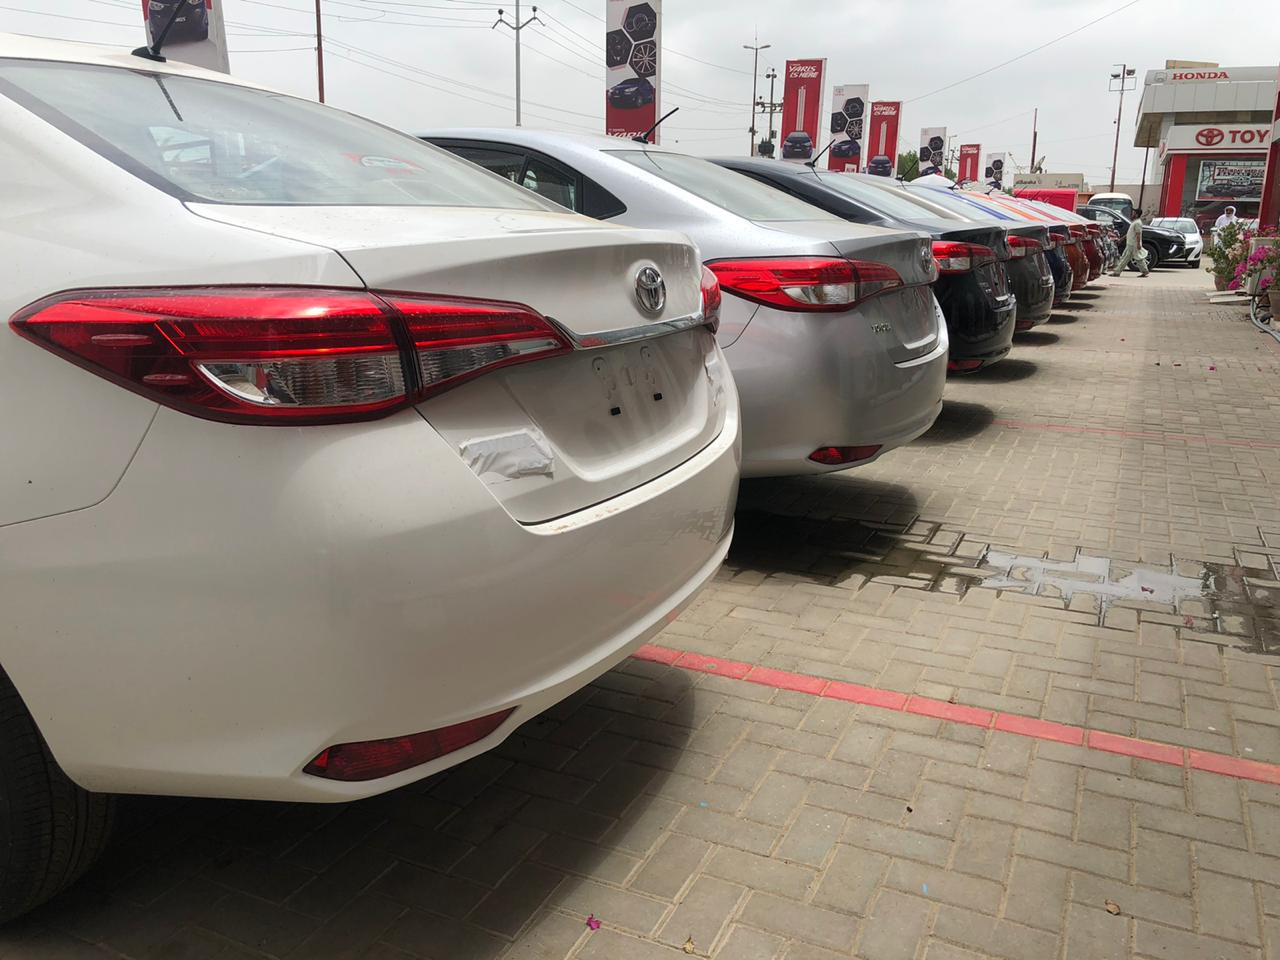 Automobile Sales Started to Recover in August 2